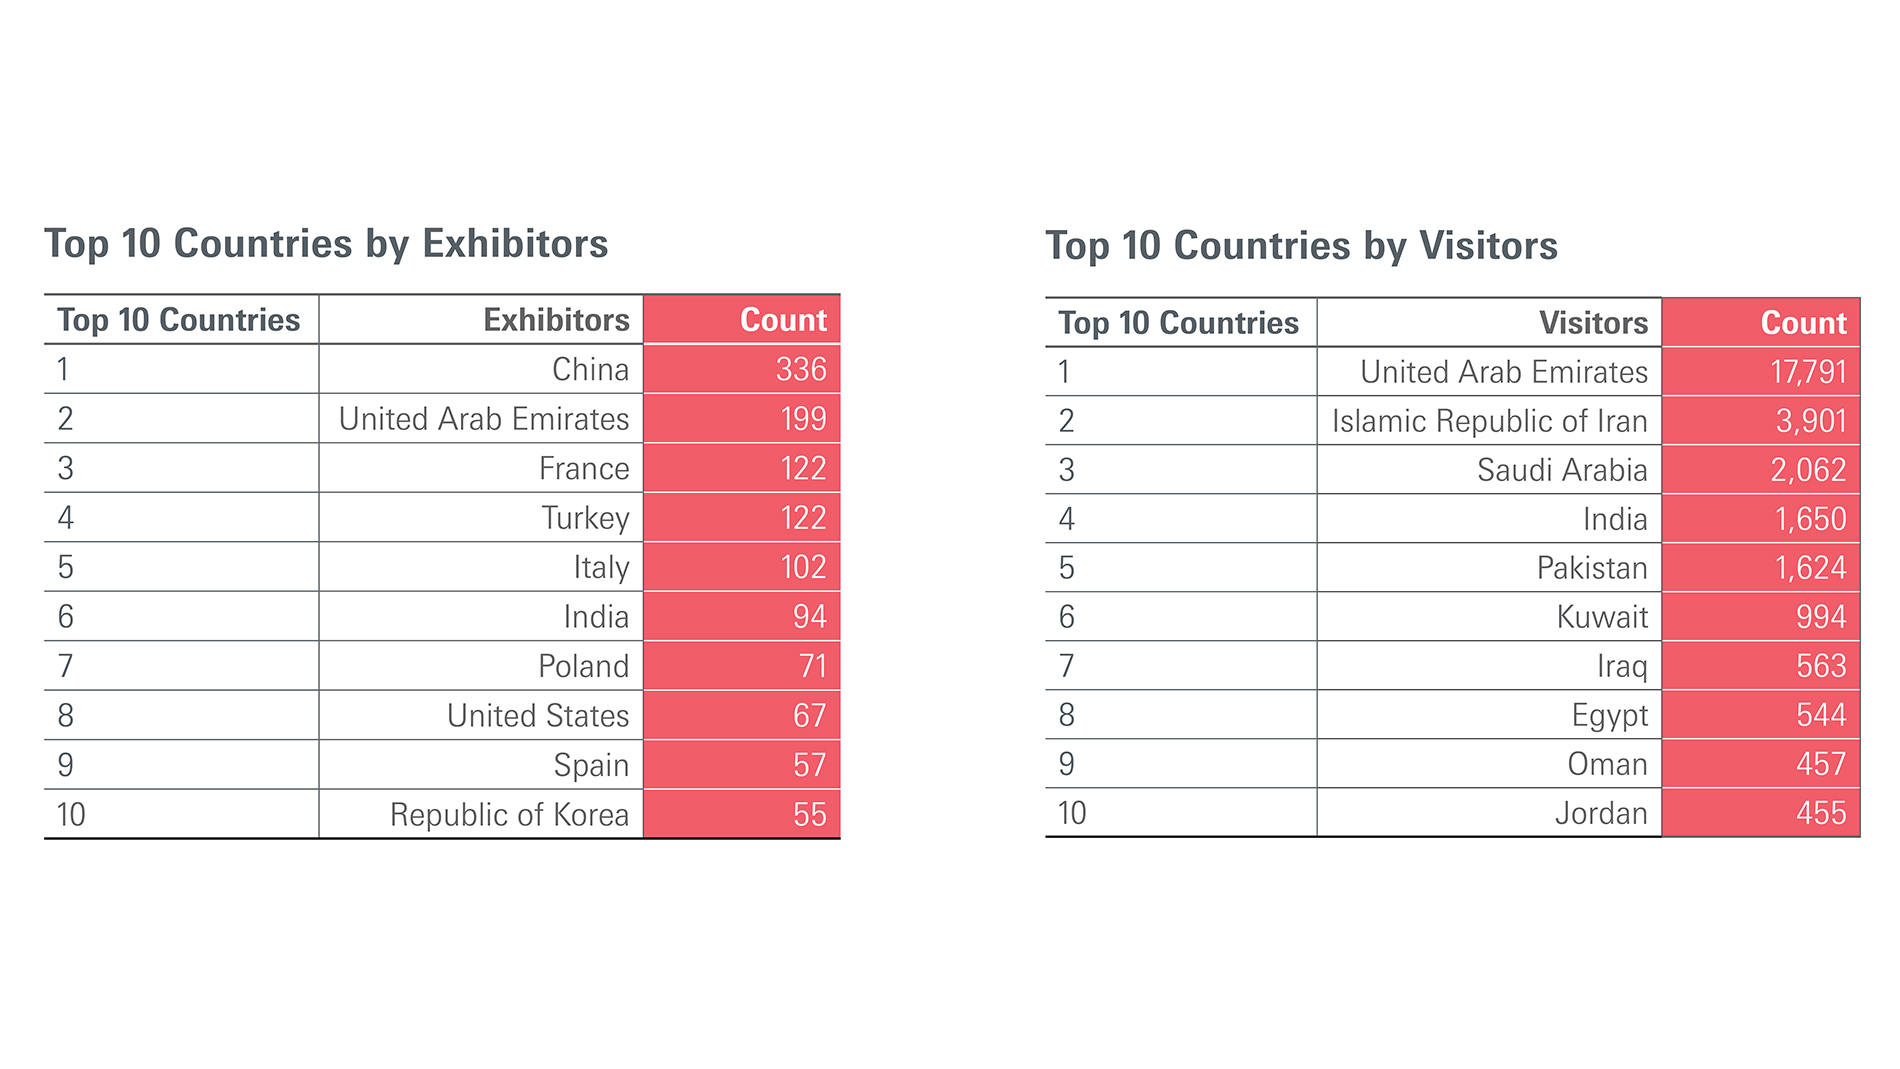 Top 10 countries by exhibitors & visitors